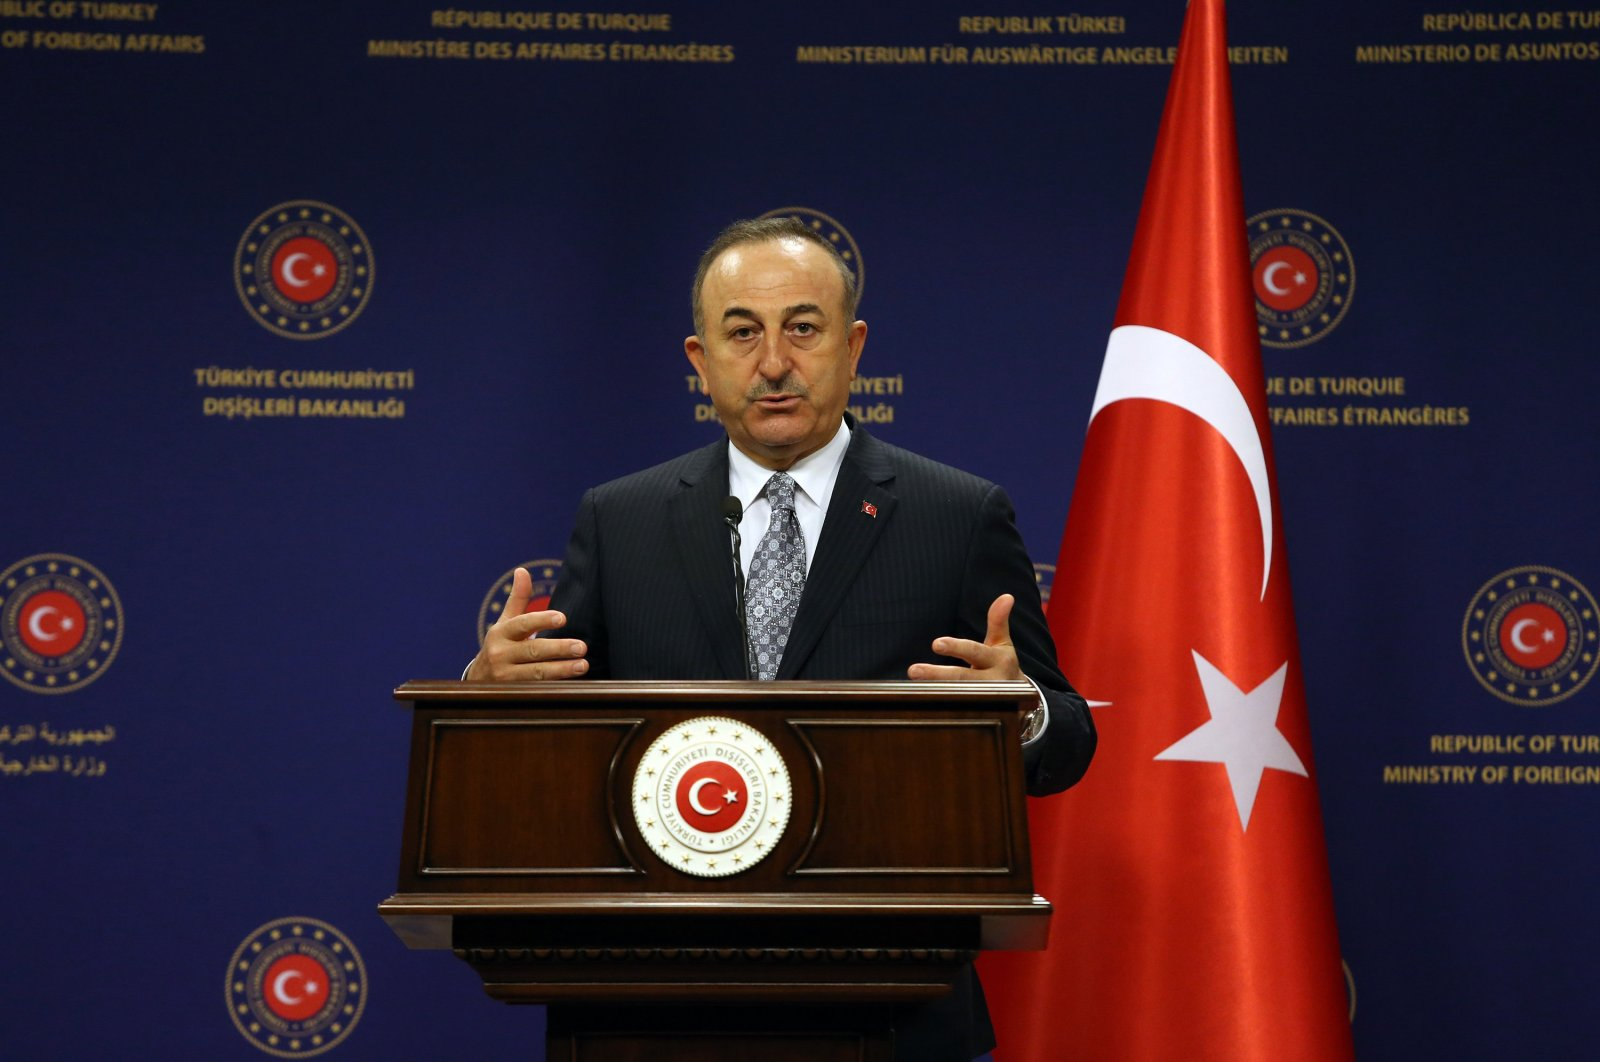 Foreign Minister Mevlüt Çavuşoğlu speaks at a joint news conference with his Iraqi counterpart in Ankara on Dec. 16, 2020 (Sabah File Photo)